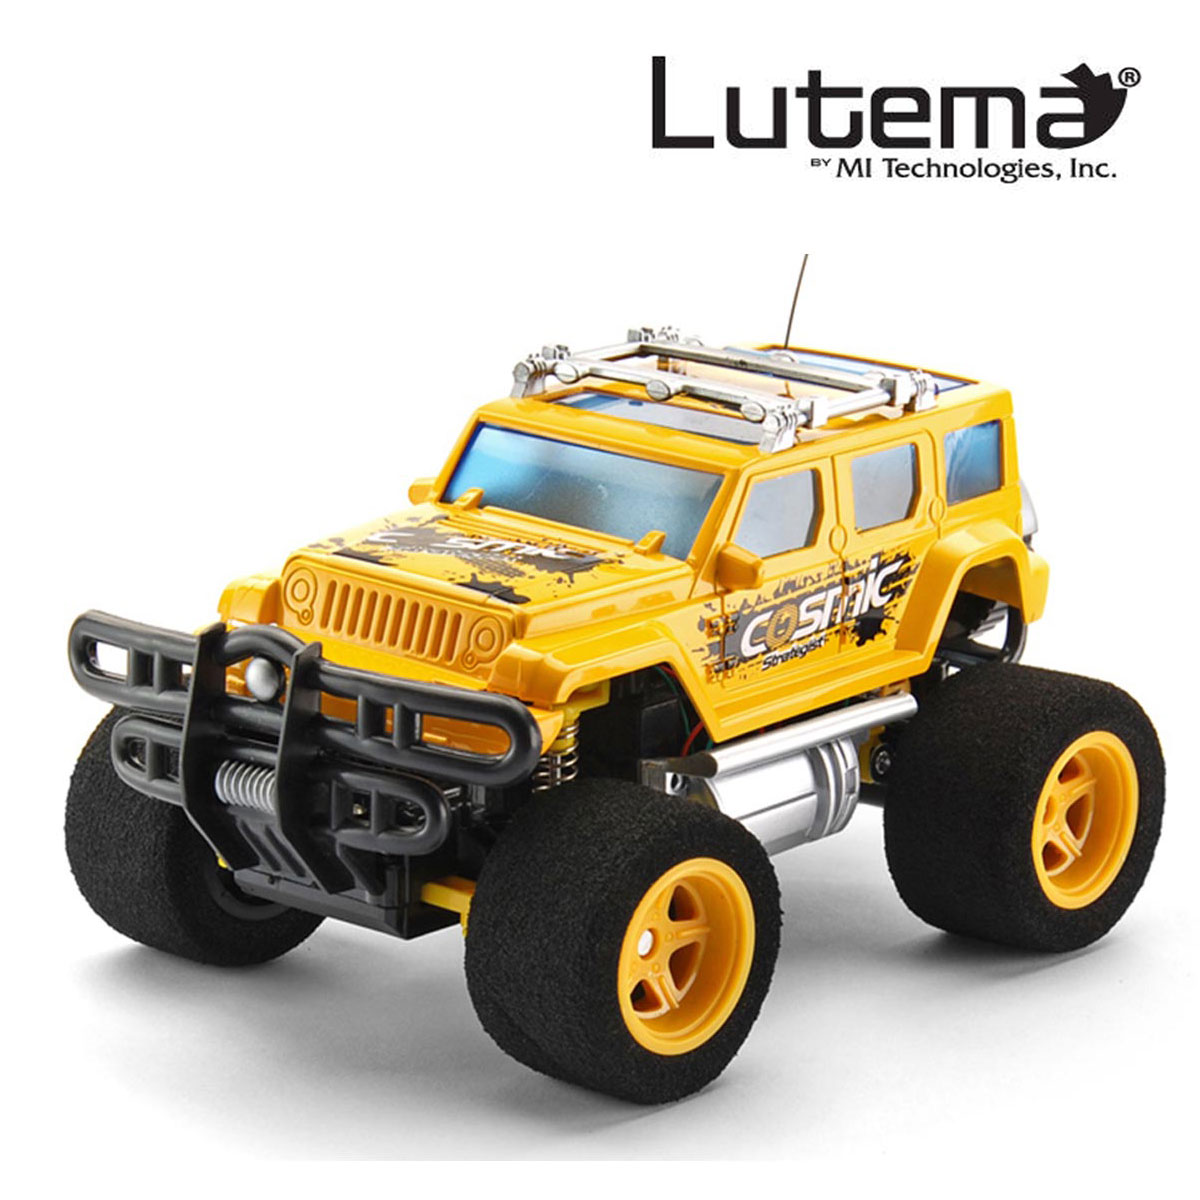 Lutema Cosmic Rocket 4CH Remote Control Truck Yellow by